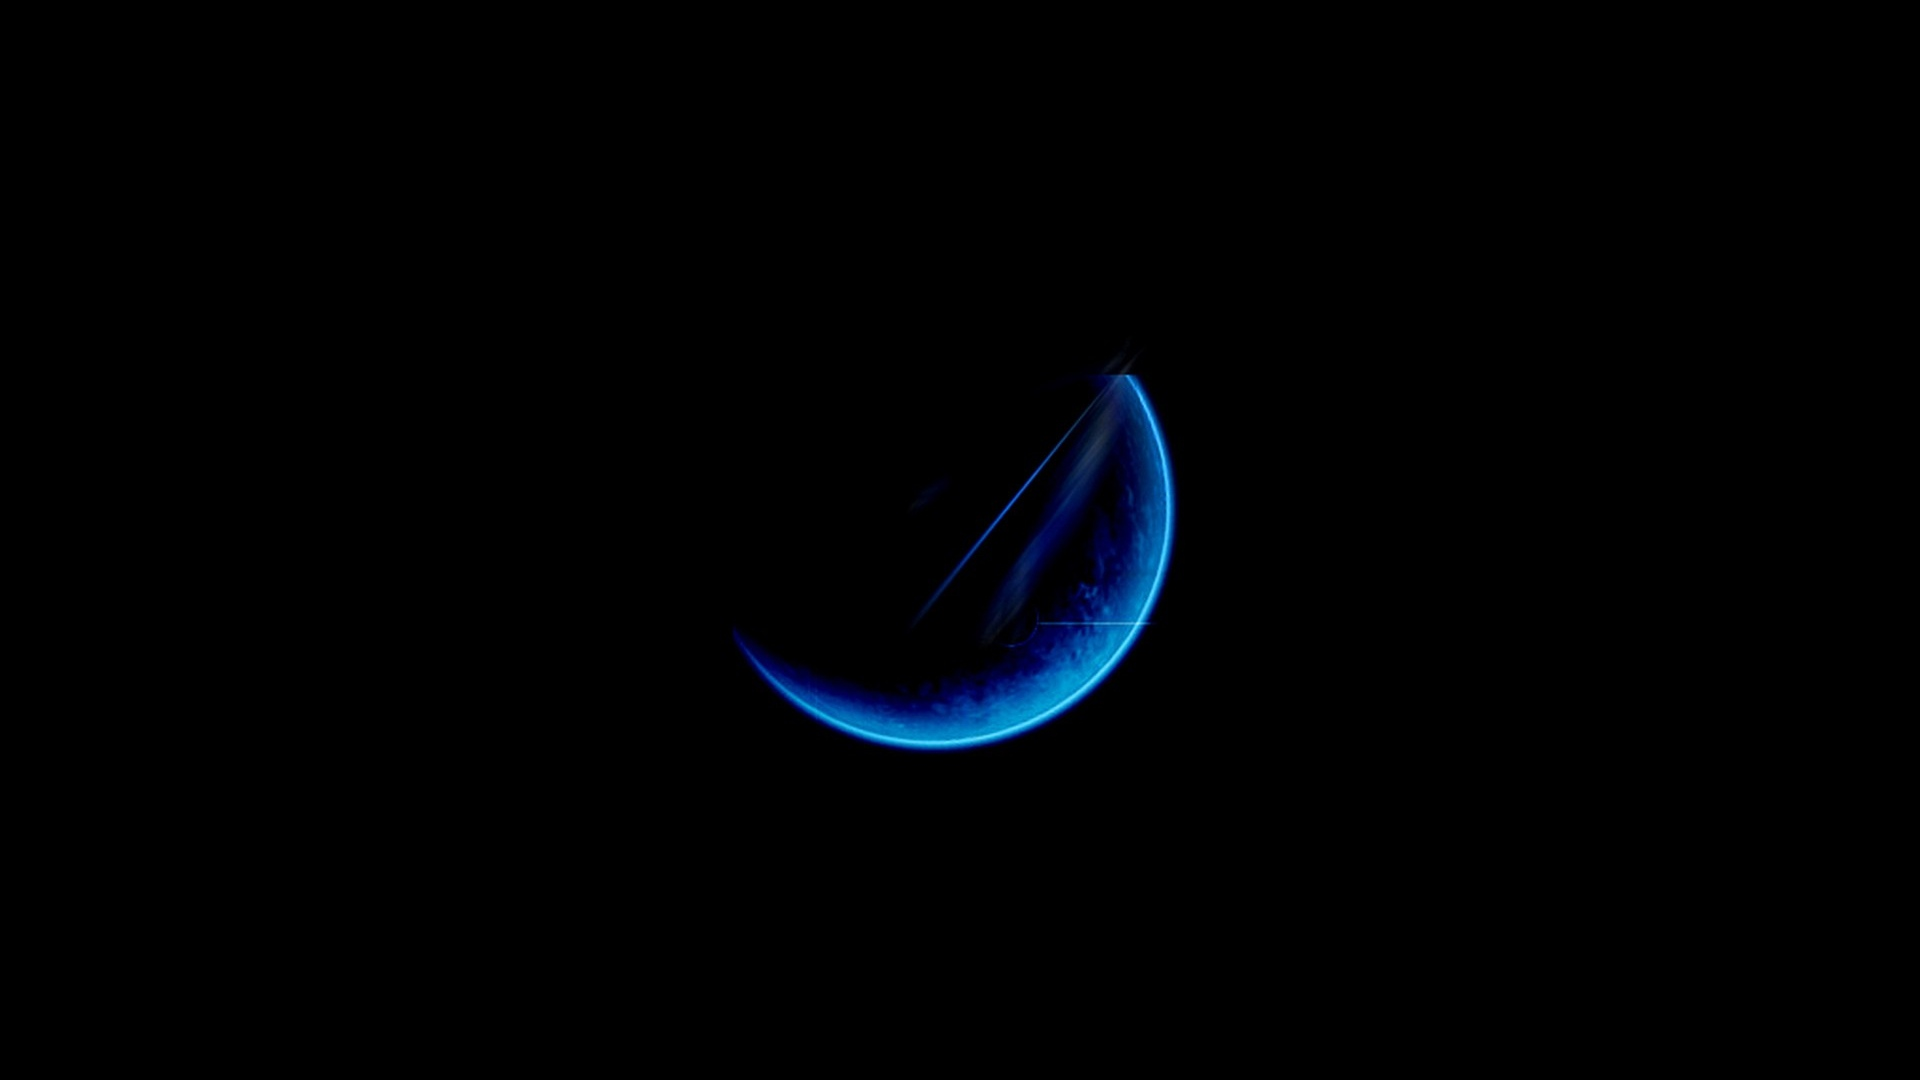 Hd Wallpaper 1920x1080 Black Blue: Dark Blue Moon Wallpaper